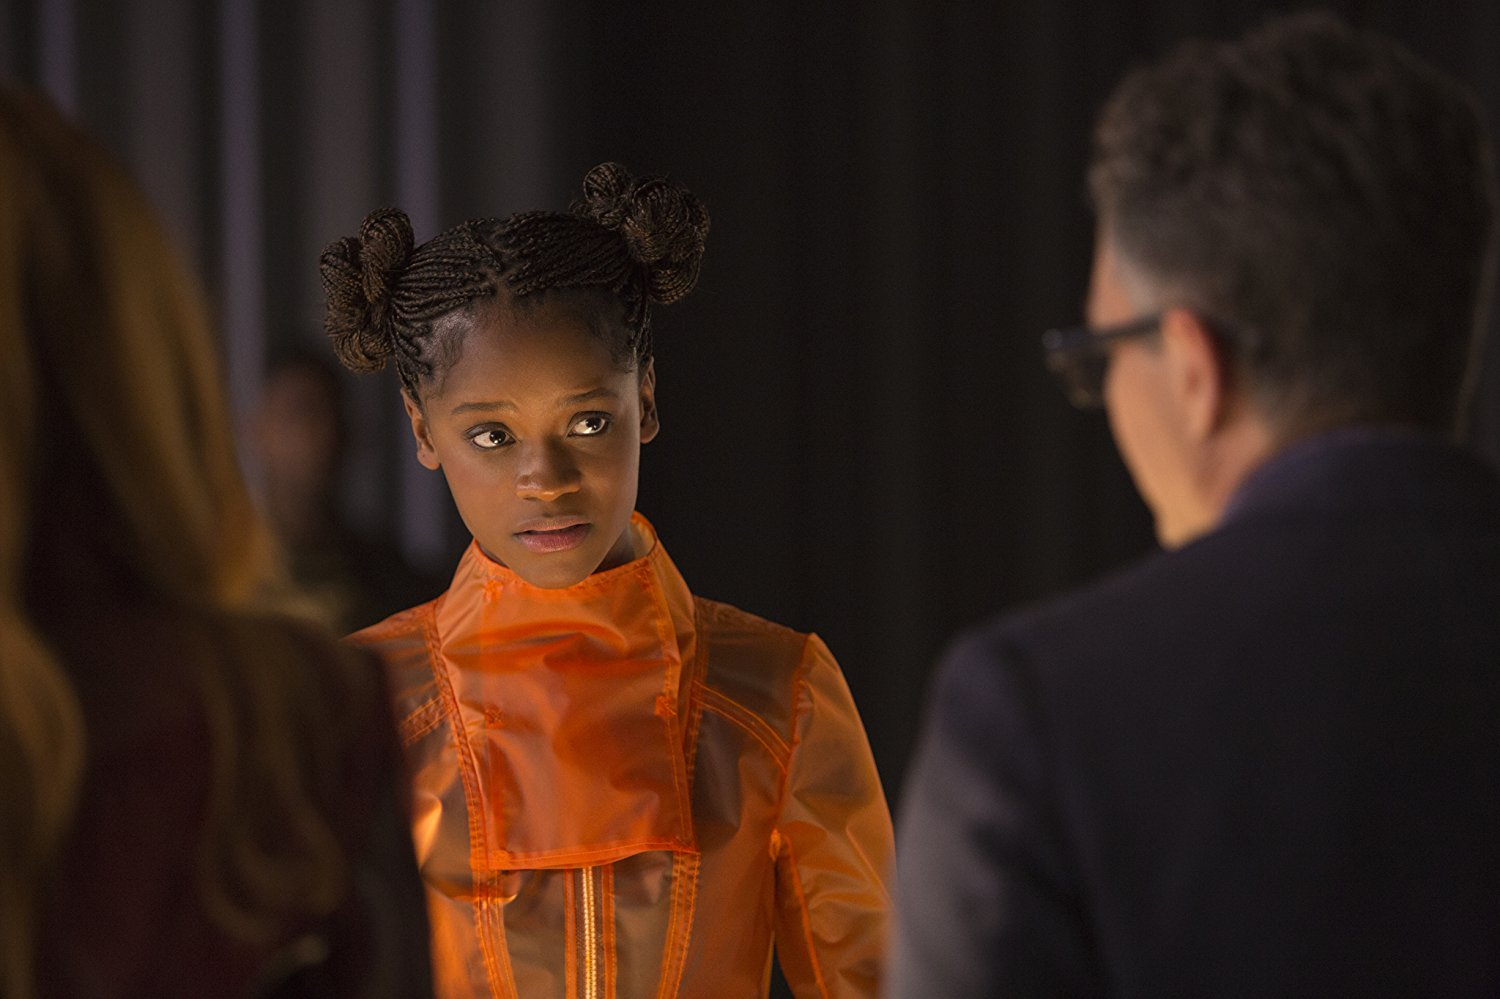 "In ""Avengers: Infinity War,"" Letitia Wright reprises her role as T'challa's sister, Shuri, in her second film amongst the Marvel Cinematic Universe. Shuri is an innovative mind, and her inclusion insinuates that her technological skills may be influential and necessary to the Avengers in the fight against Thanos."